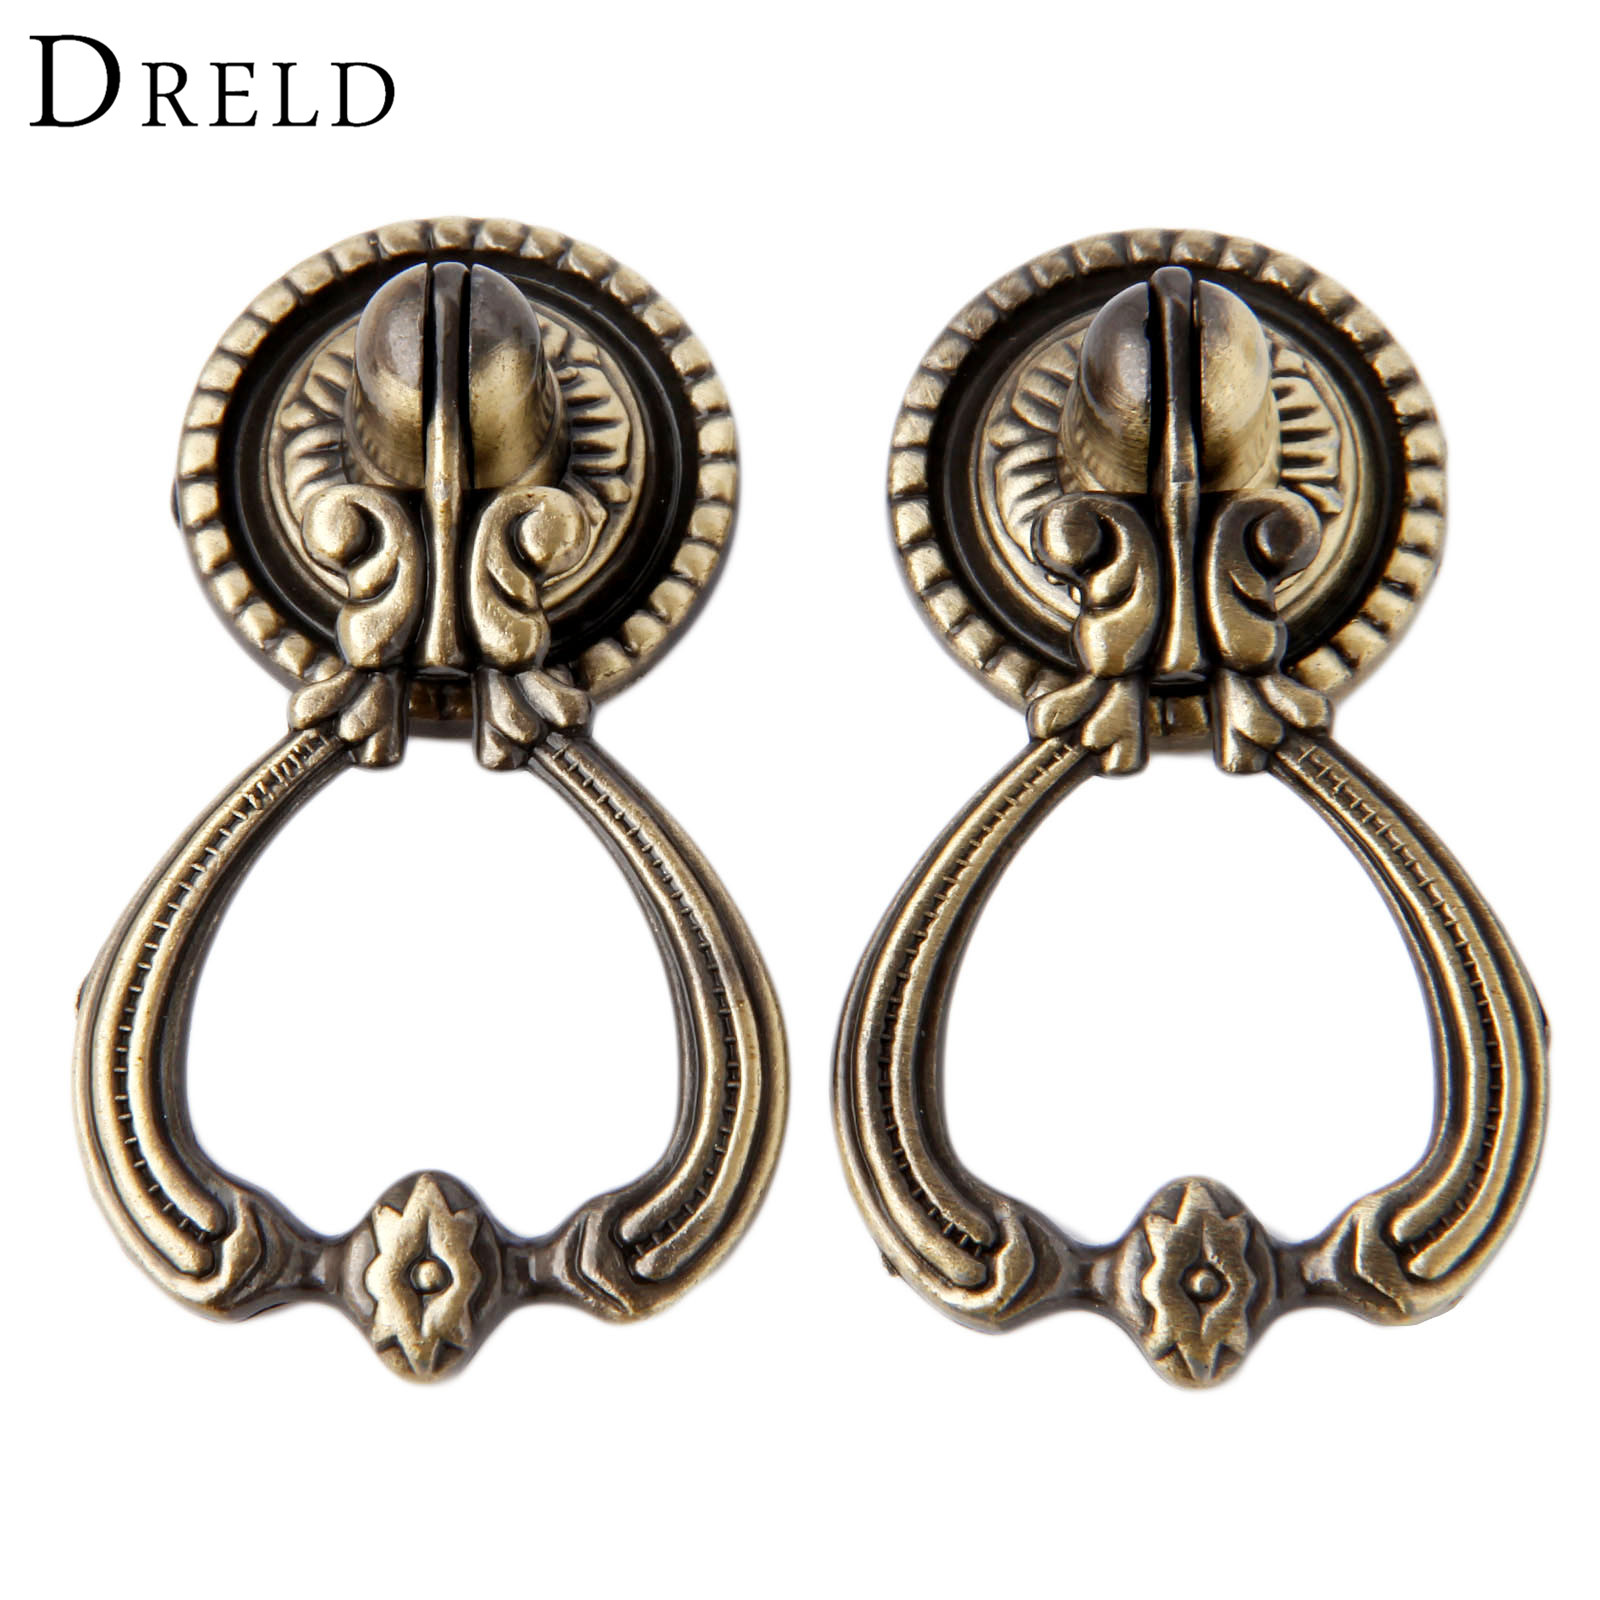 DRELD 2Pcs Antique Brass Furniture Handles Vintage Cabinet Knobs and Handles Door Closet Cabinet Drawer Pull Handle for Kitchen 96mm cabinet handles palace euro style furniture ivory with 24k golden knobs closet door handle drawer pulls bars